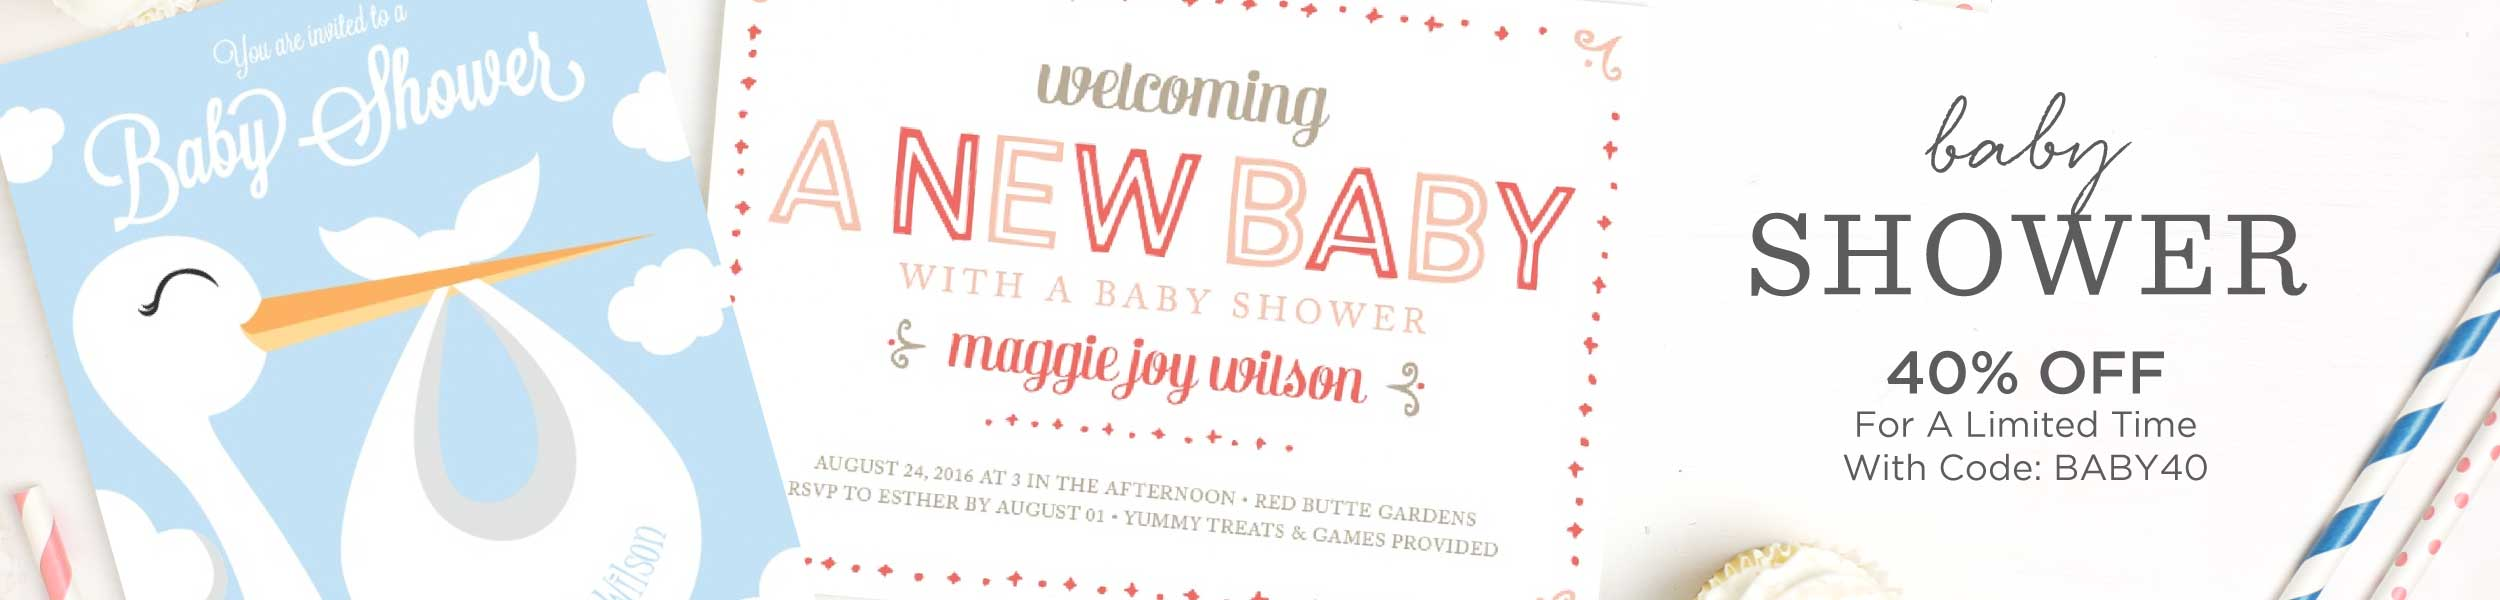 Full Size of Baby Shower:homemade Baby Shower Decorations Baby Shower Ideas Baby Girl Baby Shower Supplies Baby Girl Party Plates Baby Shower Card Message Ideas Zazzle Invitations Baby Girl Themes For Baby Shower Oriental Trading Baby Shower